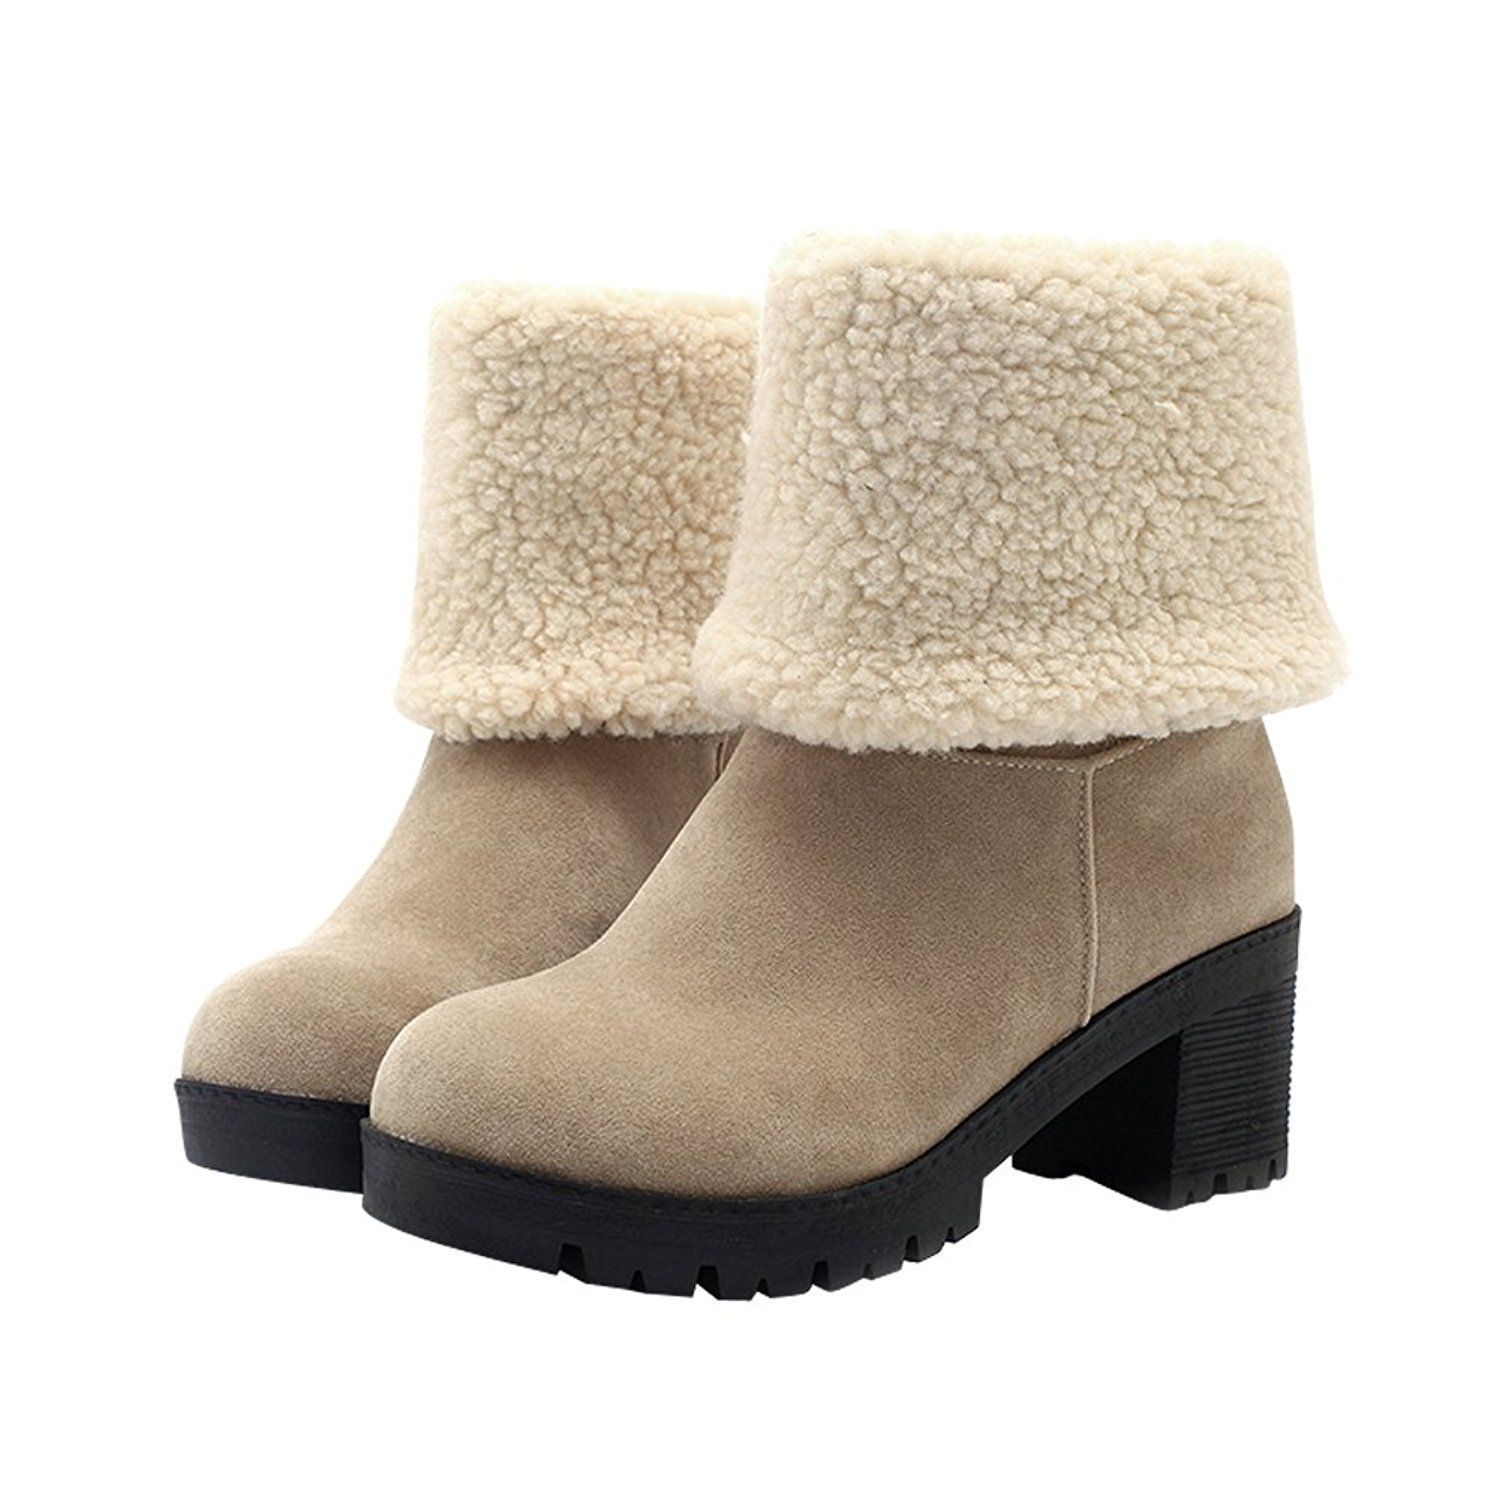 aeb4264f8fb3 Latasa Women s Faux Suede Chunky Heel Pull on Mid Calf Winter Snow Boots    Click on